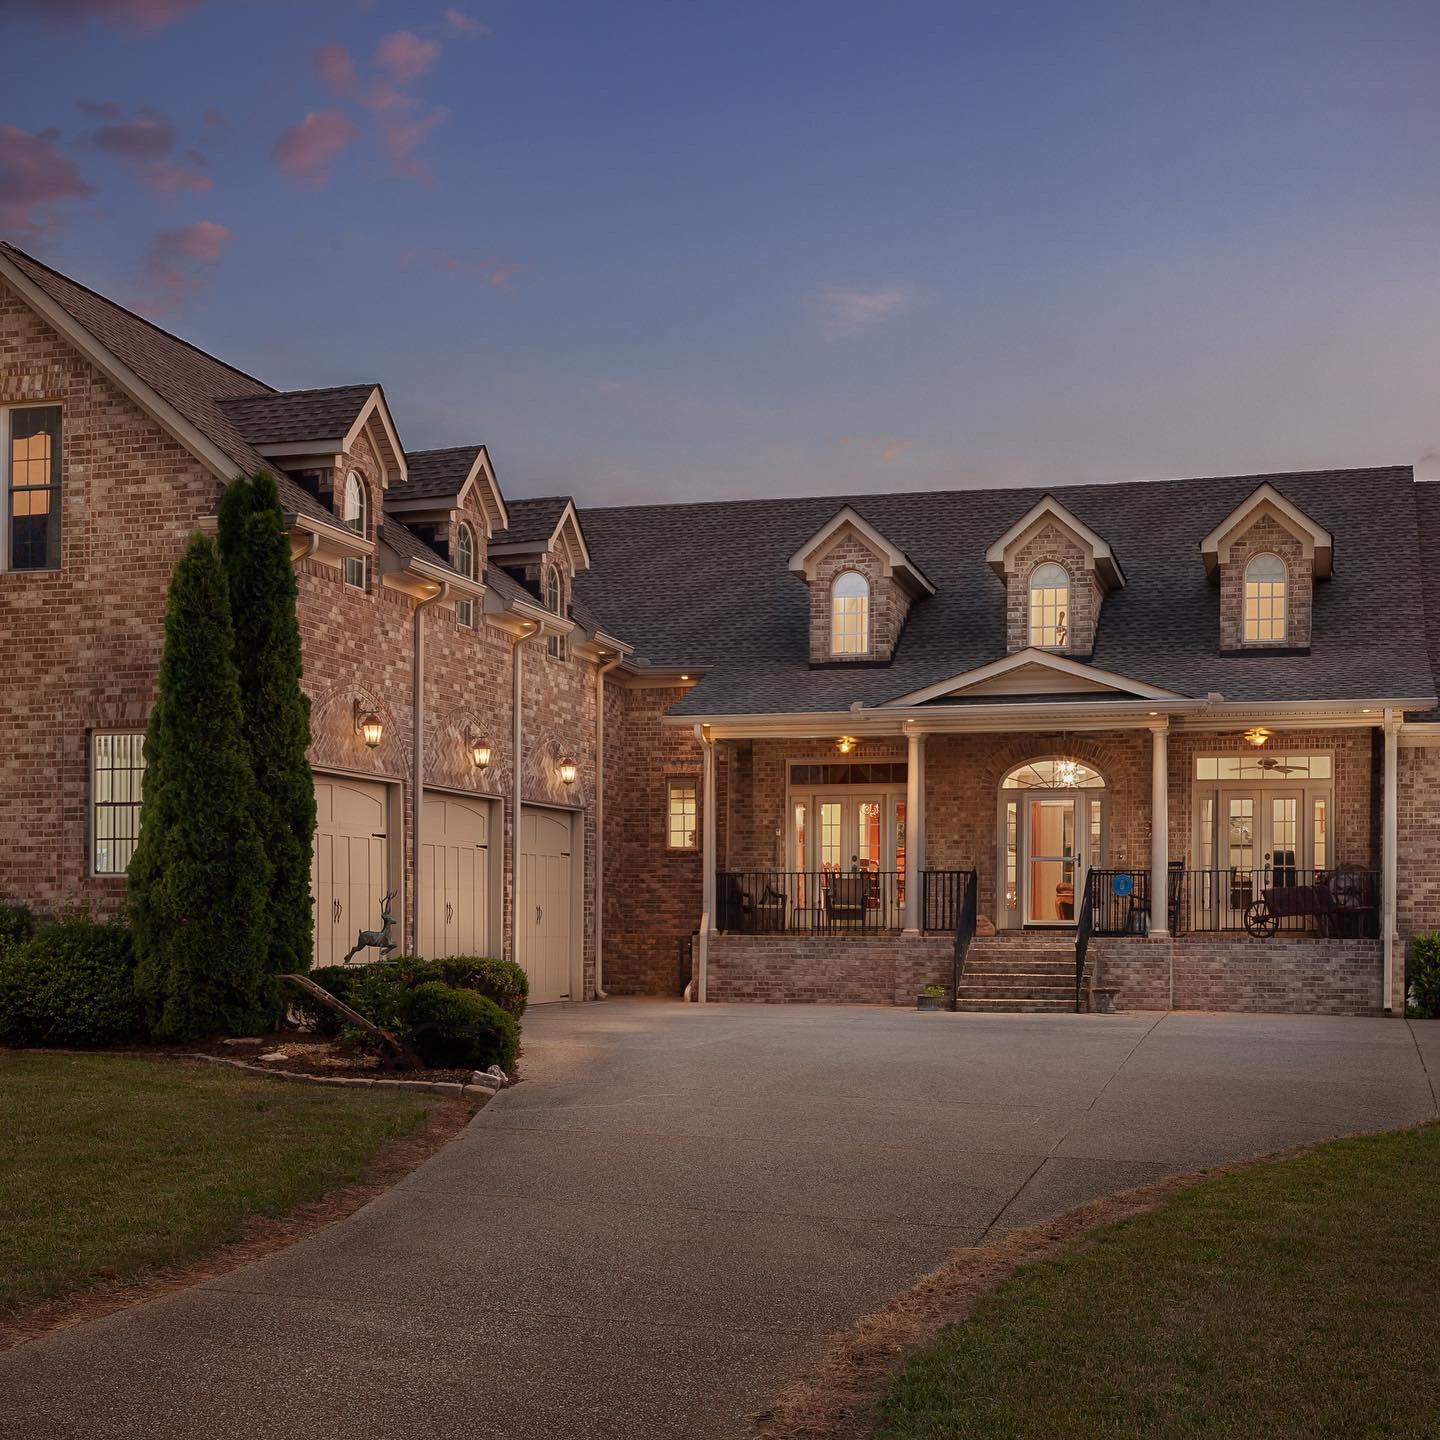 6347 Jones Lane, Murfreesboro, Tennessee